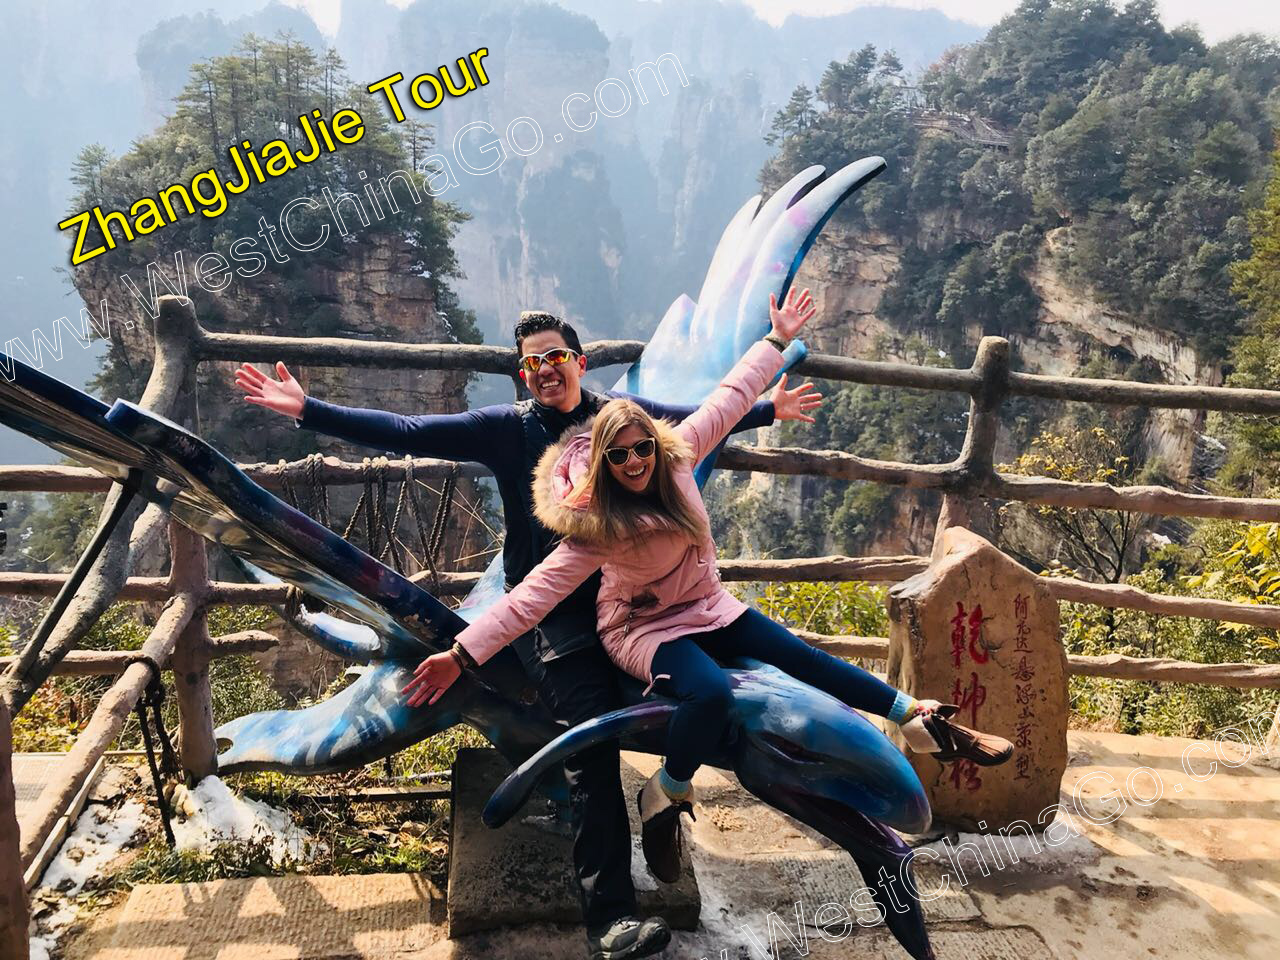 china zhangjiajie tours 2019